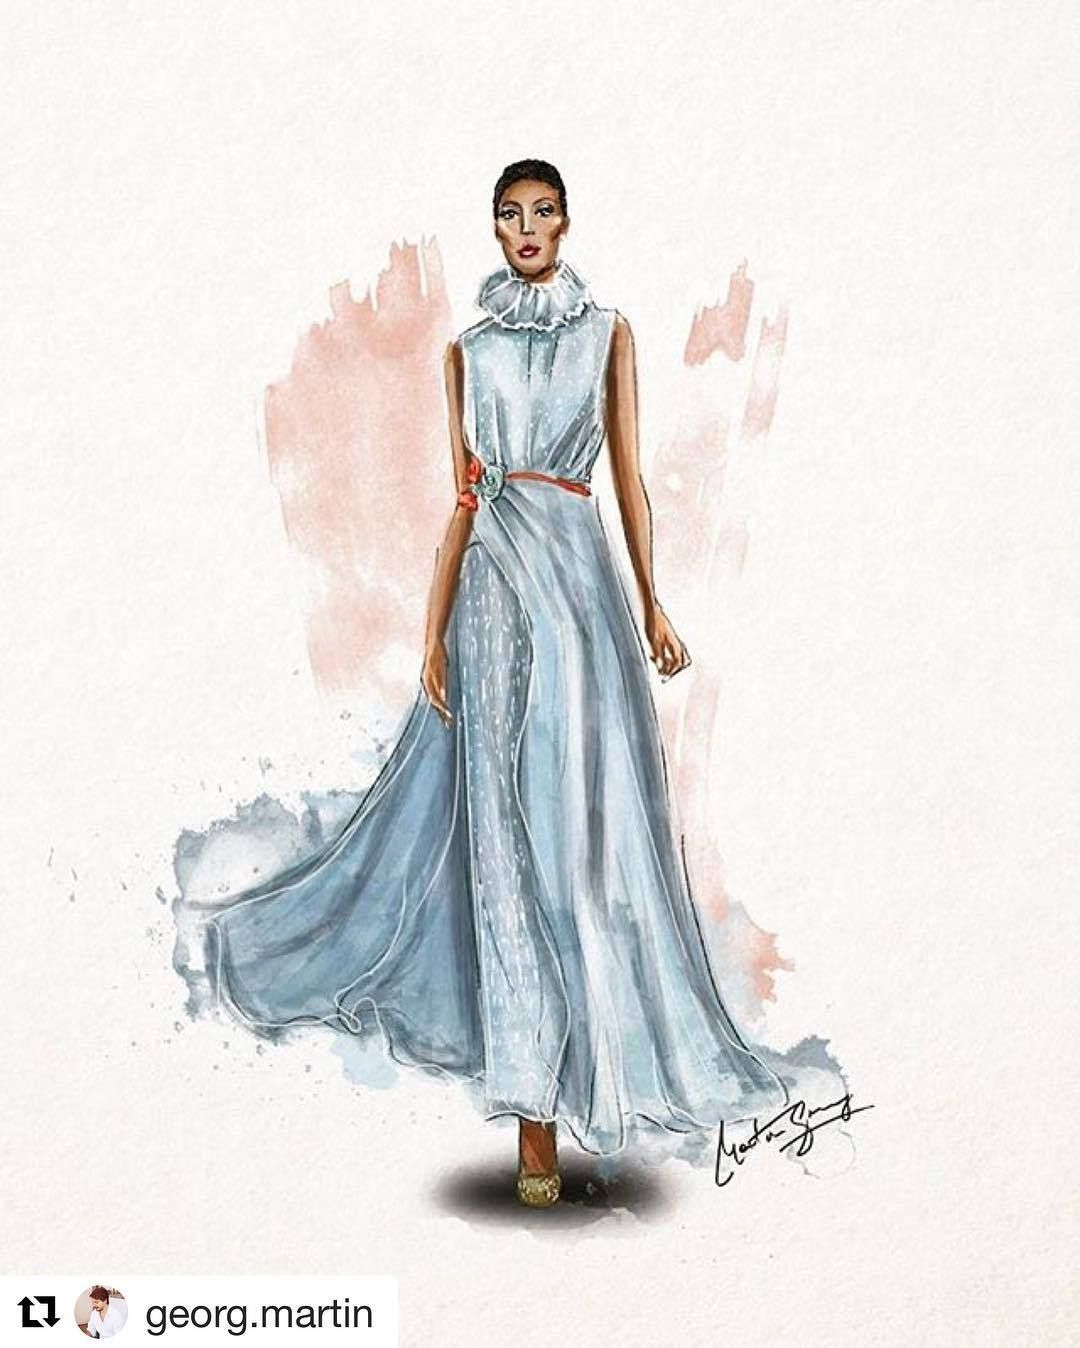 Style Design Class Repost Georg Martin Get Repost Fashion Illustration Design Classes Fashion Sketches